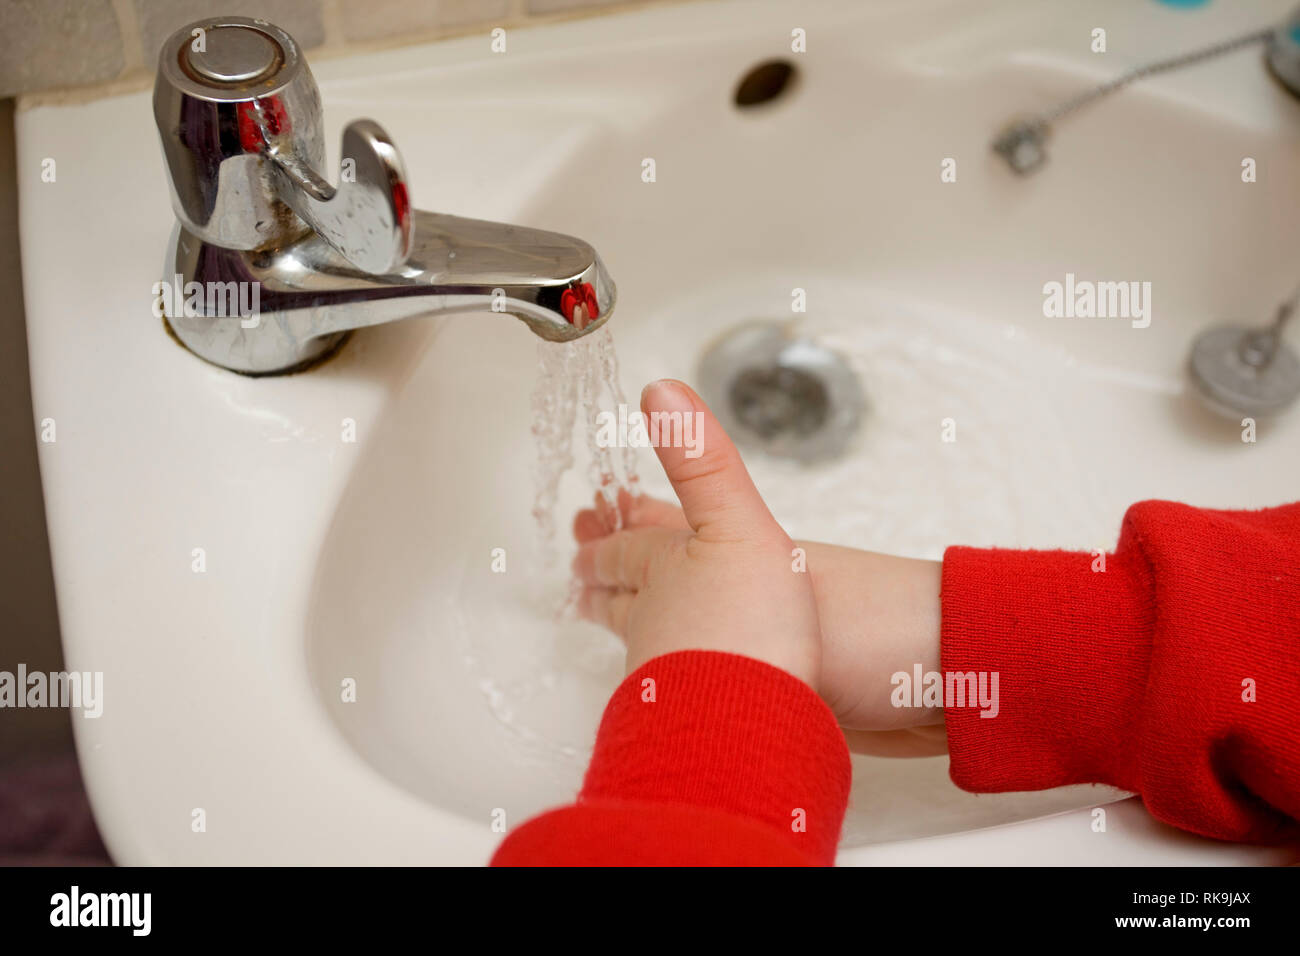 washing hands under hot tap - Stock Image